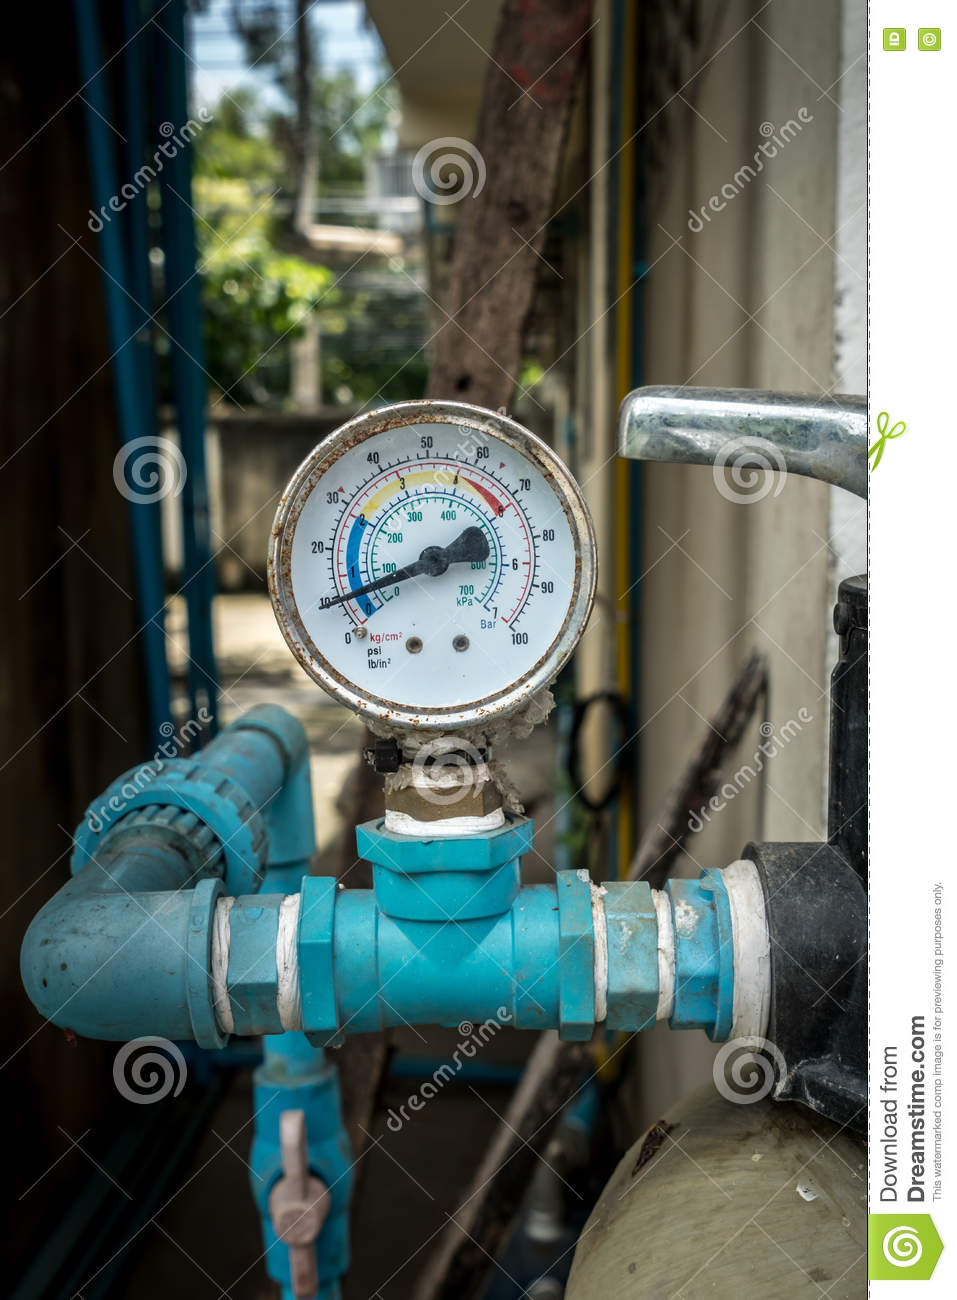 Water pressure gage stock photo. Image of dial, boiler - 77355366